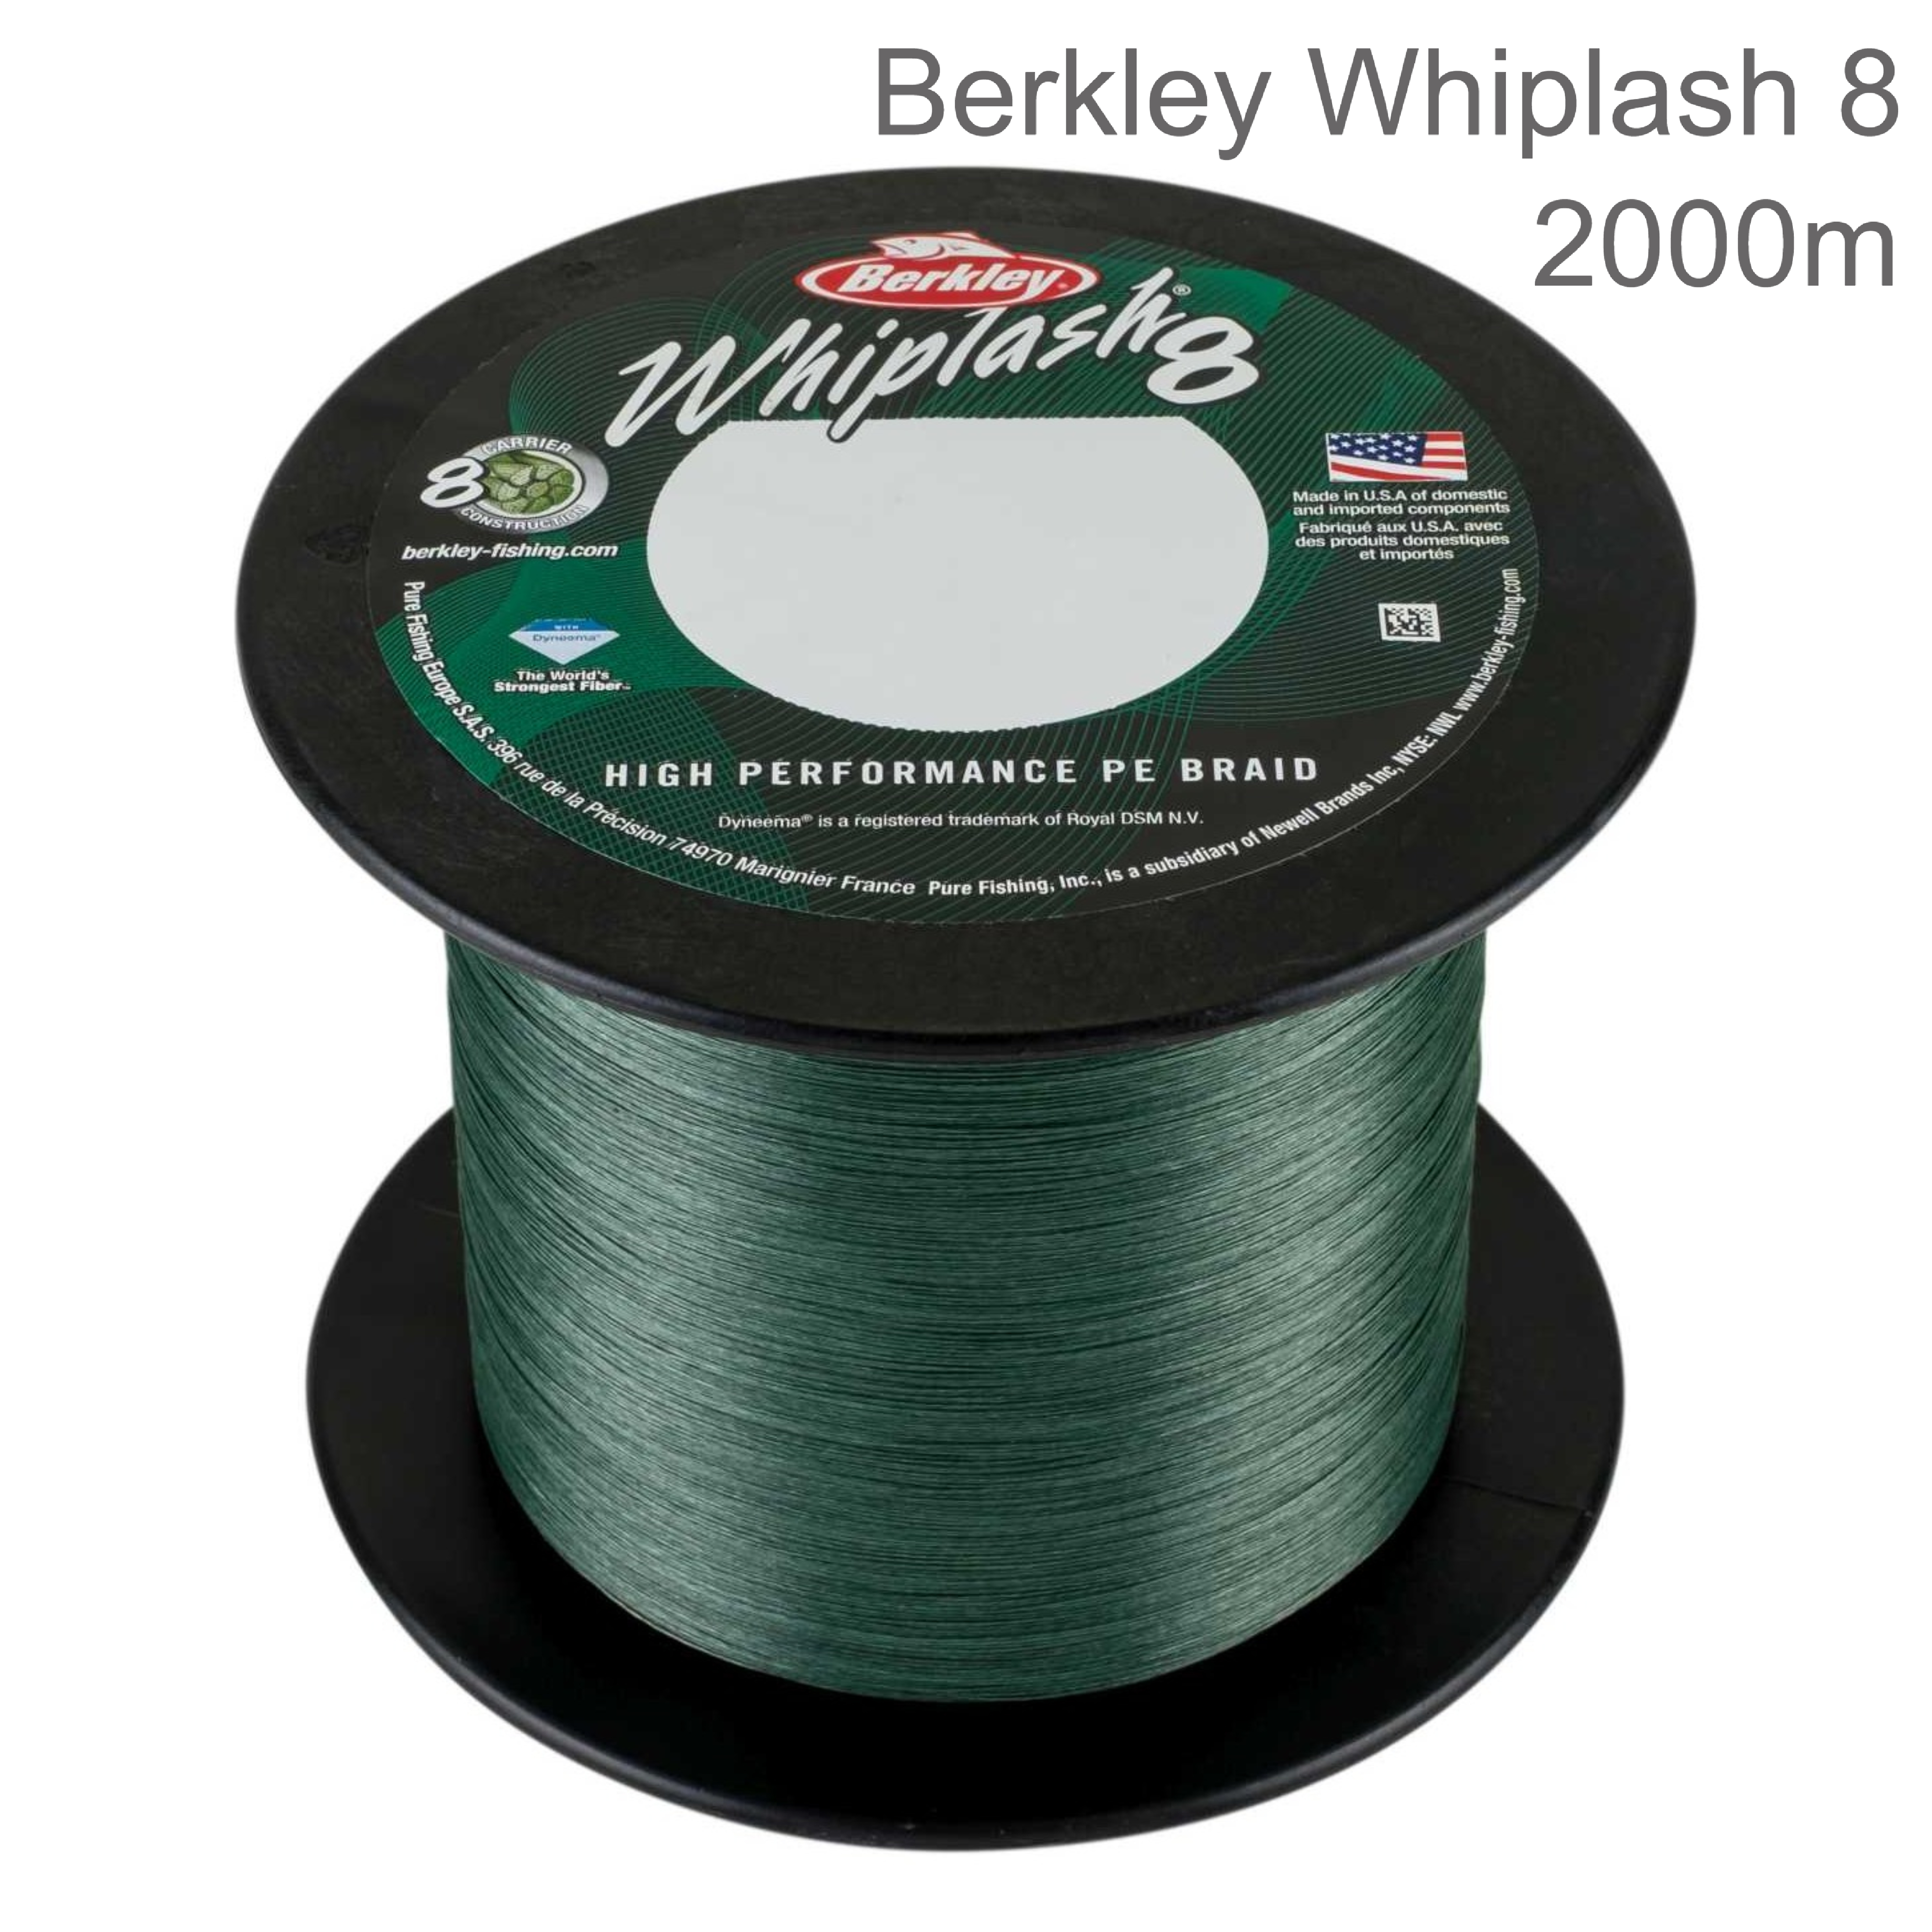 Berkley Whiplash Carrier 8 Braid Fishing Line | 100% PE Superline | 2000m Spool | Green